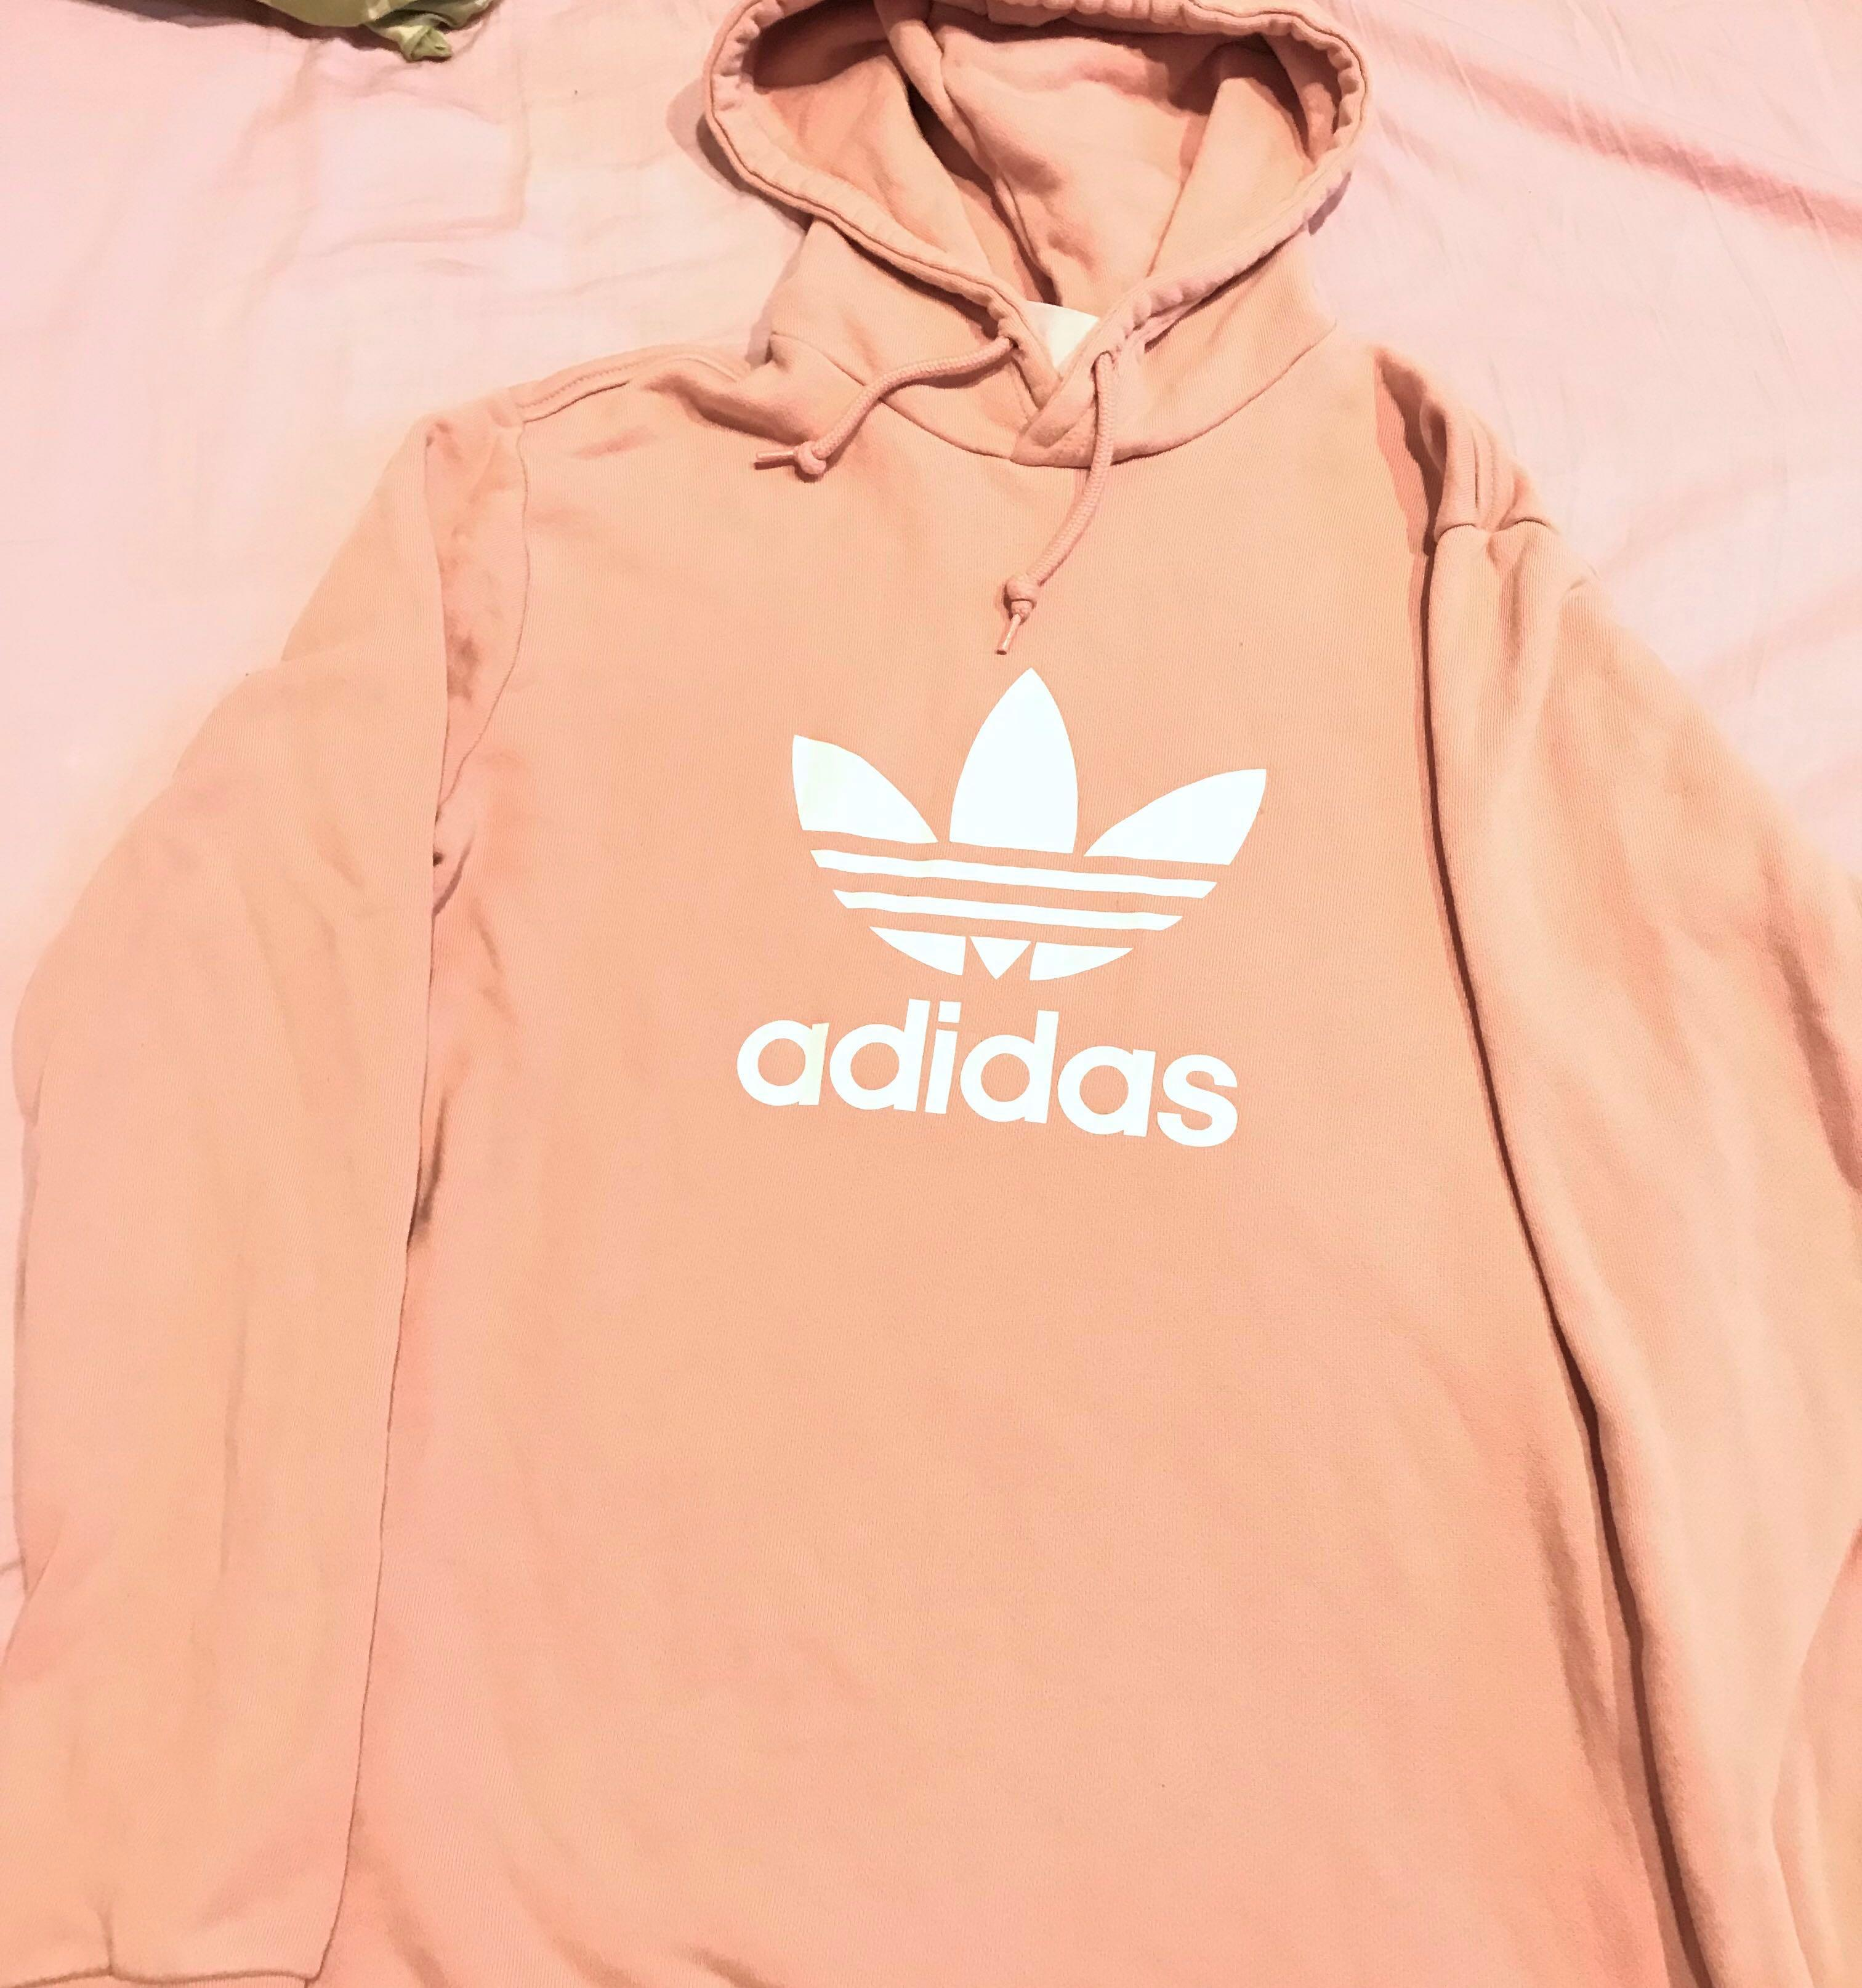 adidas Originals hoodie adicolor in Pink (size Small)